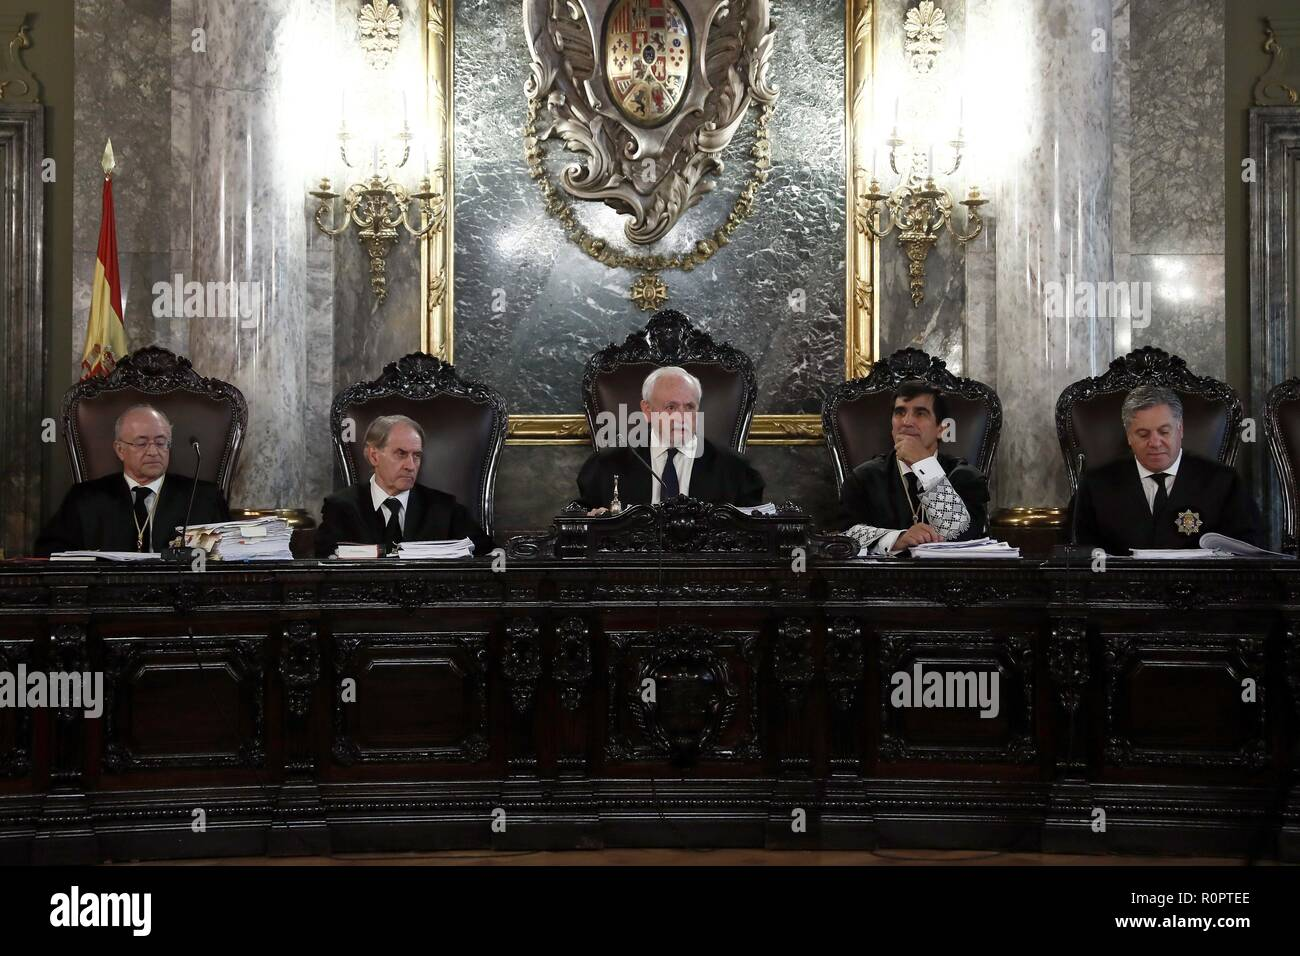 Madrid, Spain. 07th Nov, 2018. Magistrates are seen during the appeal hearing against the sentences of former Catalan President Artur Mas at the Spanish Supreme Court, in Madrid, Spain, 07 November 2018. Artur Mas, the former Vice President Joana Ortega and the former regional minister Irene Rigau lodged an appeal against their sentences for insubordination for the organization of the Catalan self-determination vote held on 09 November 2014. Credit: Sebastián Mariscal Pool/EFE/Alamy Live News - Stock Image